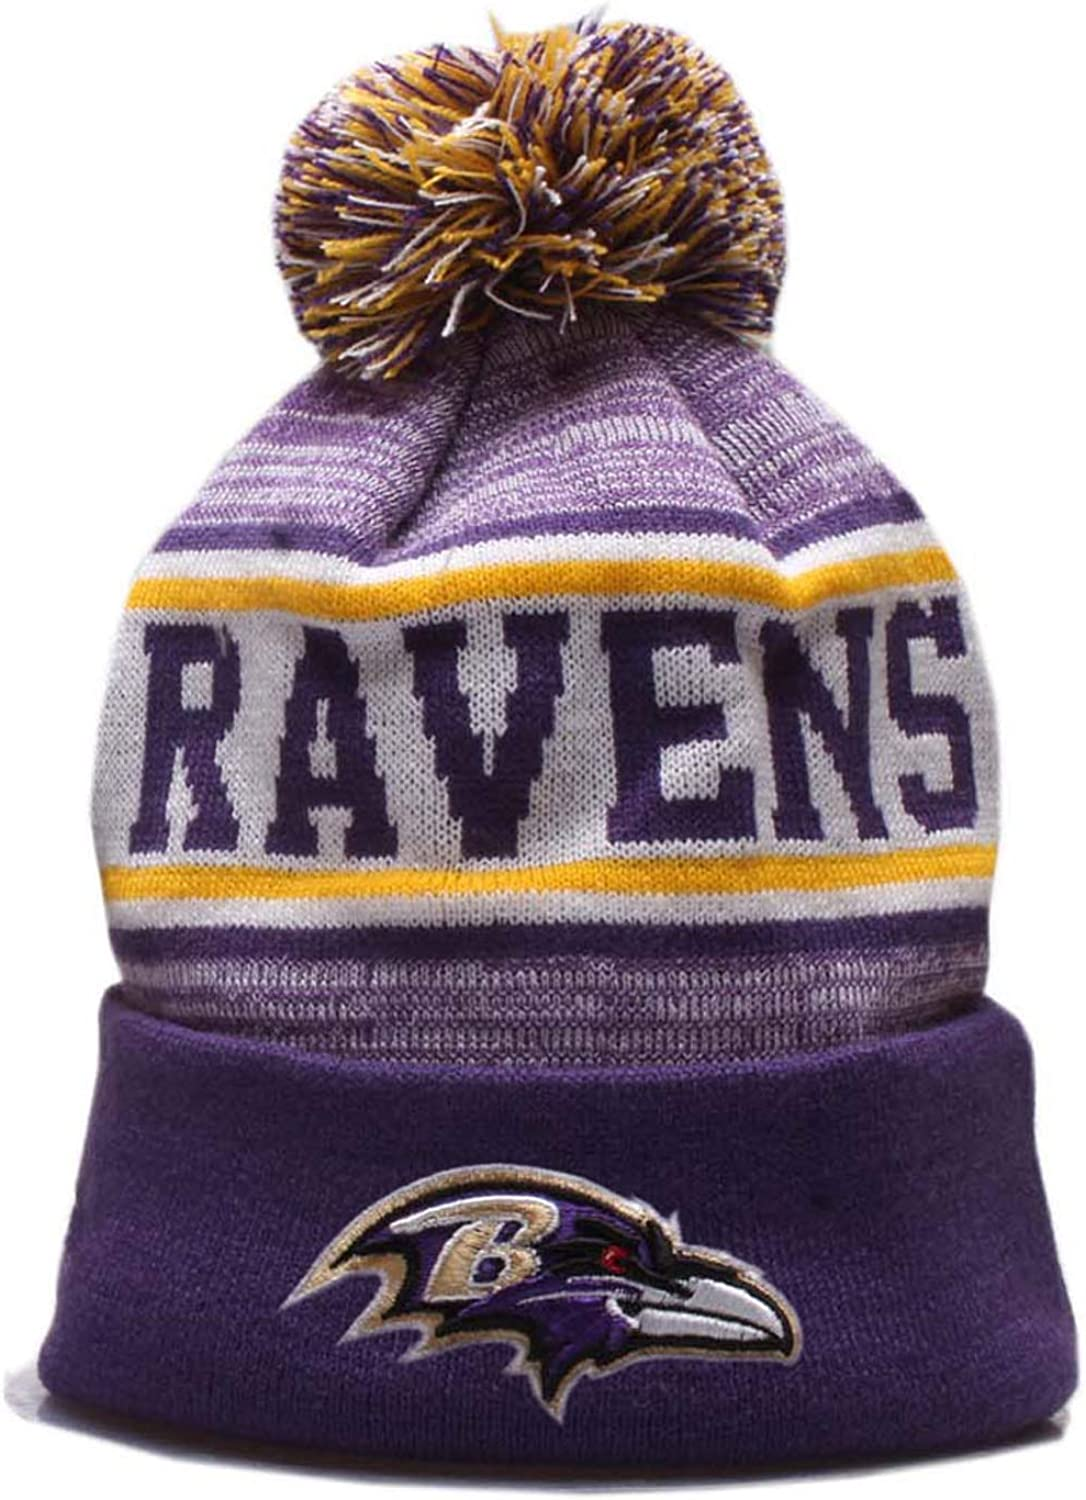 2020 Sports Fans Winter Beanie Knit Hat Knit Cap Cuffed Hat with Pom Embroidery